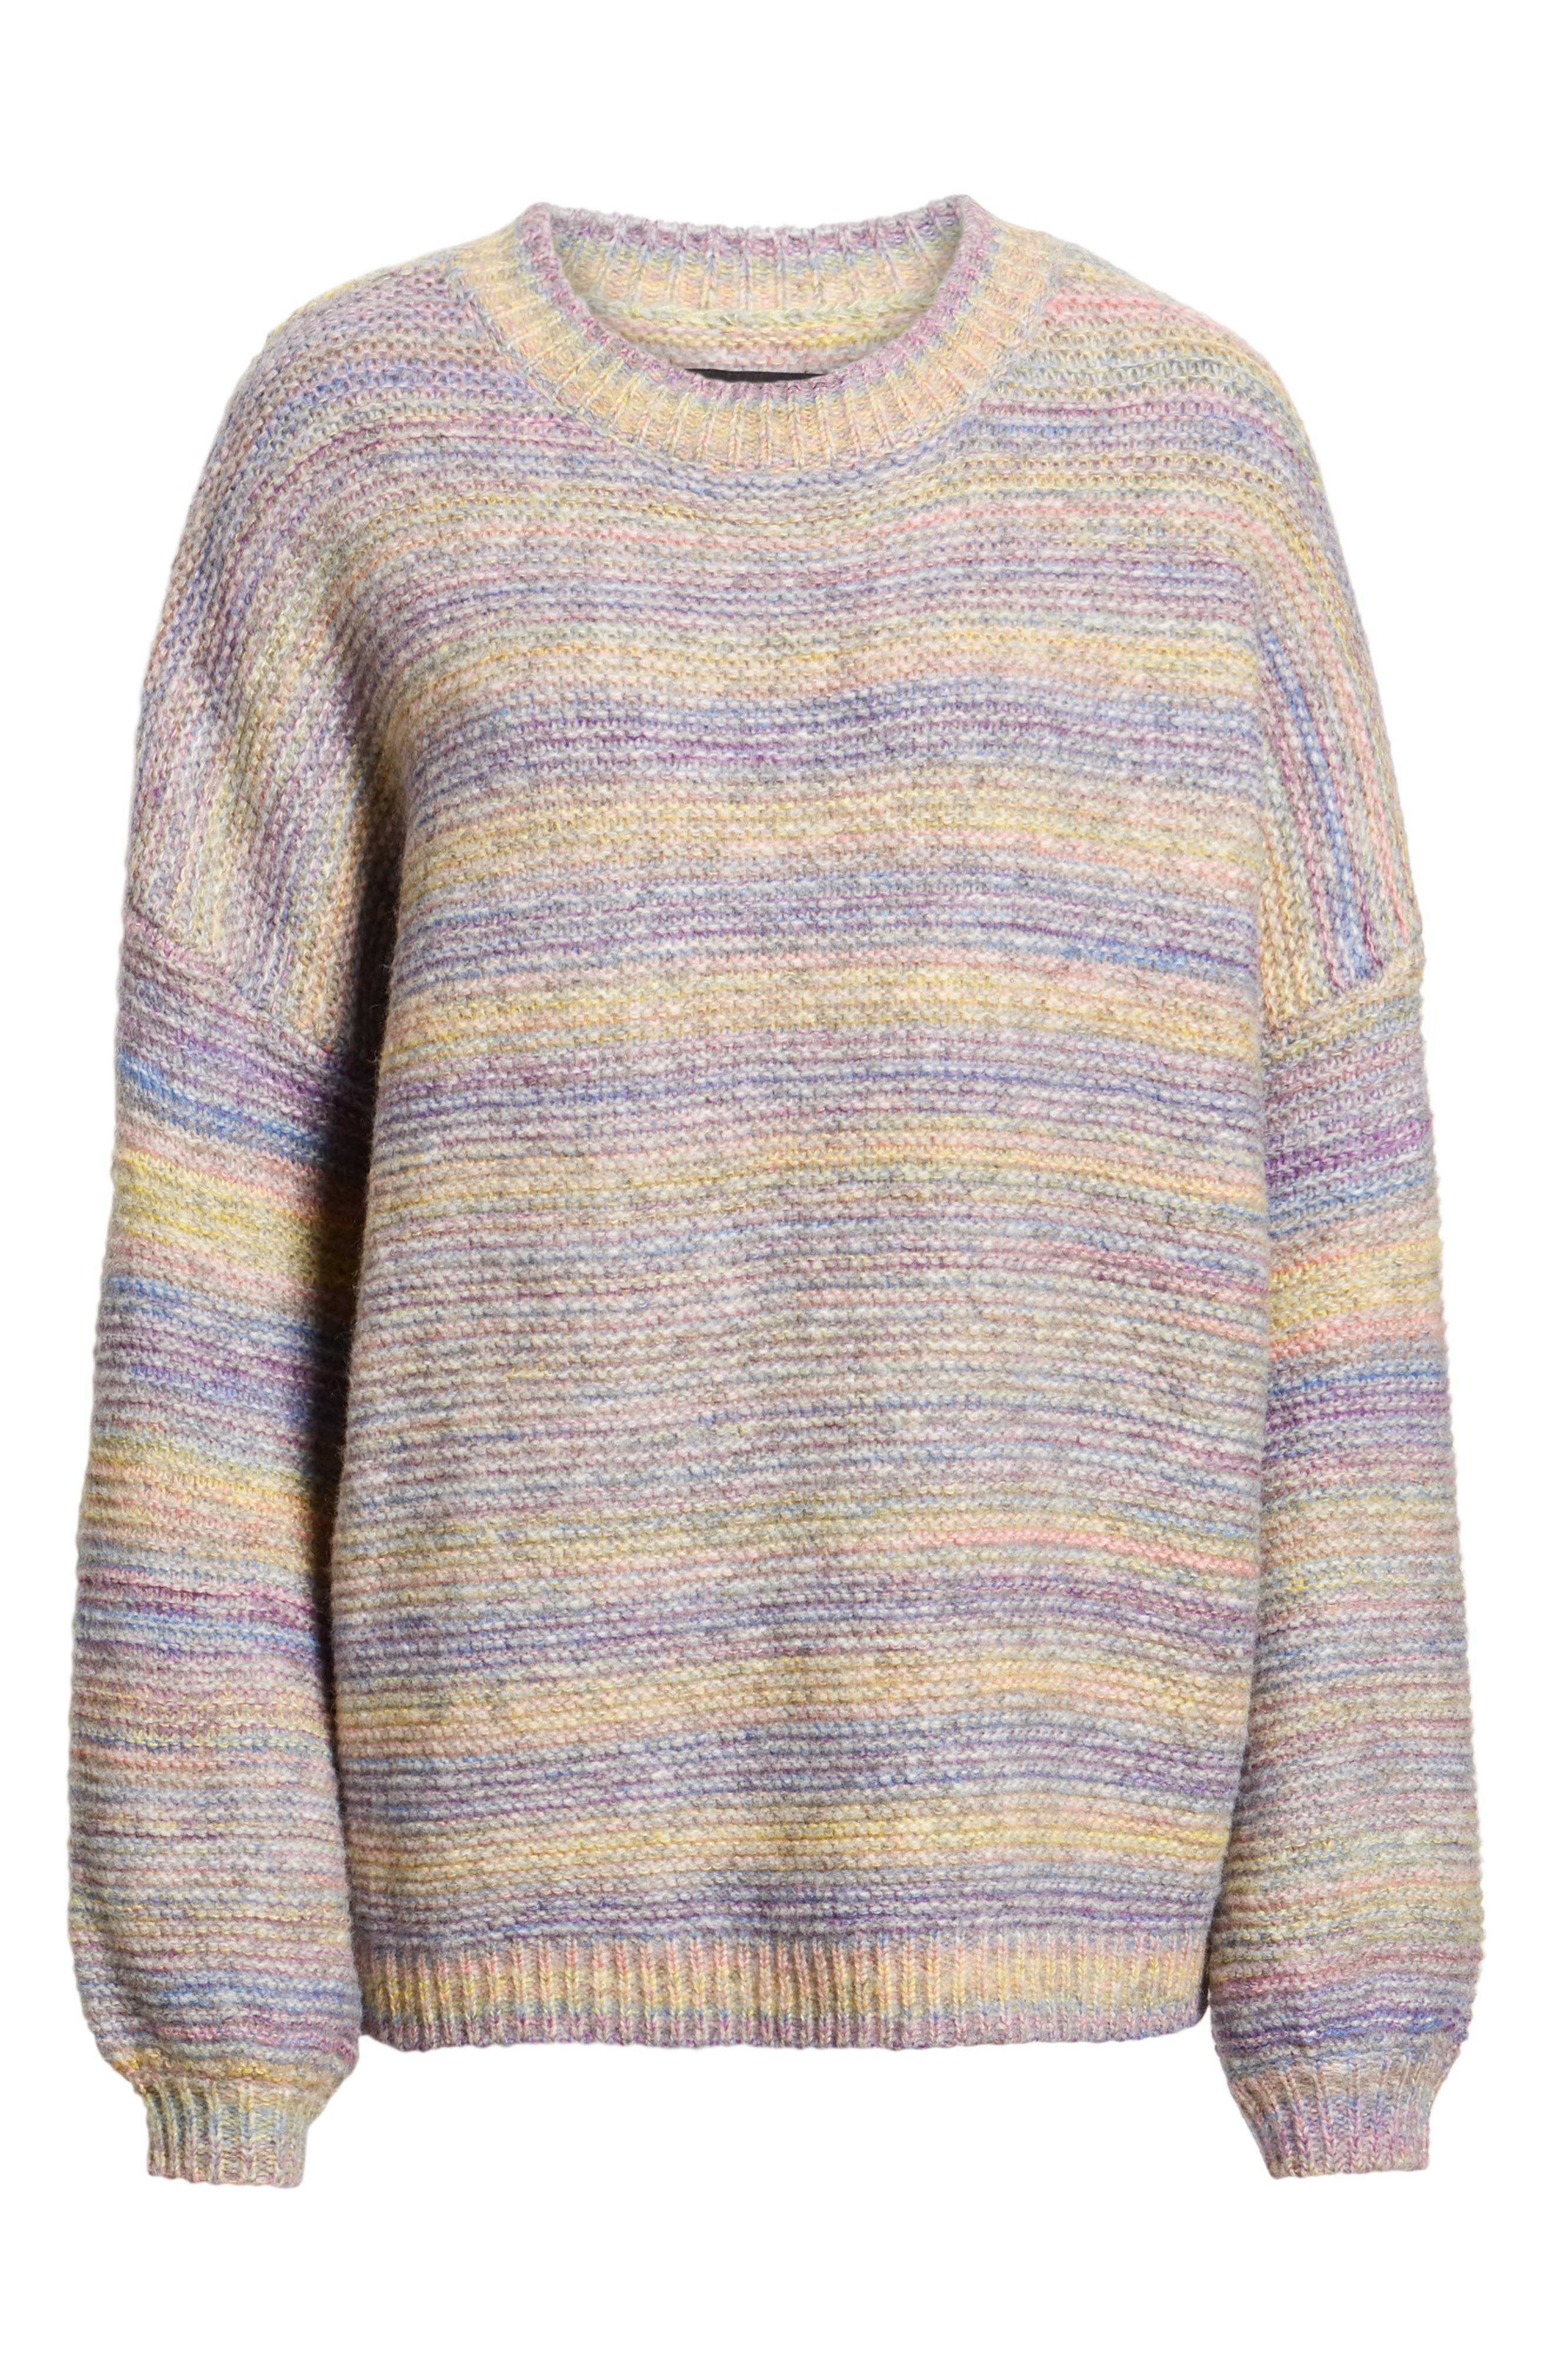 Rainbow Marl Sweater,                             Alternate thumbnail 6, color,                             YELLOW